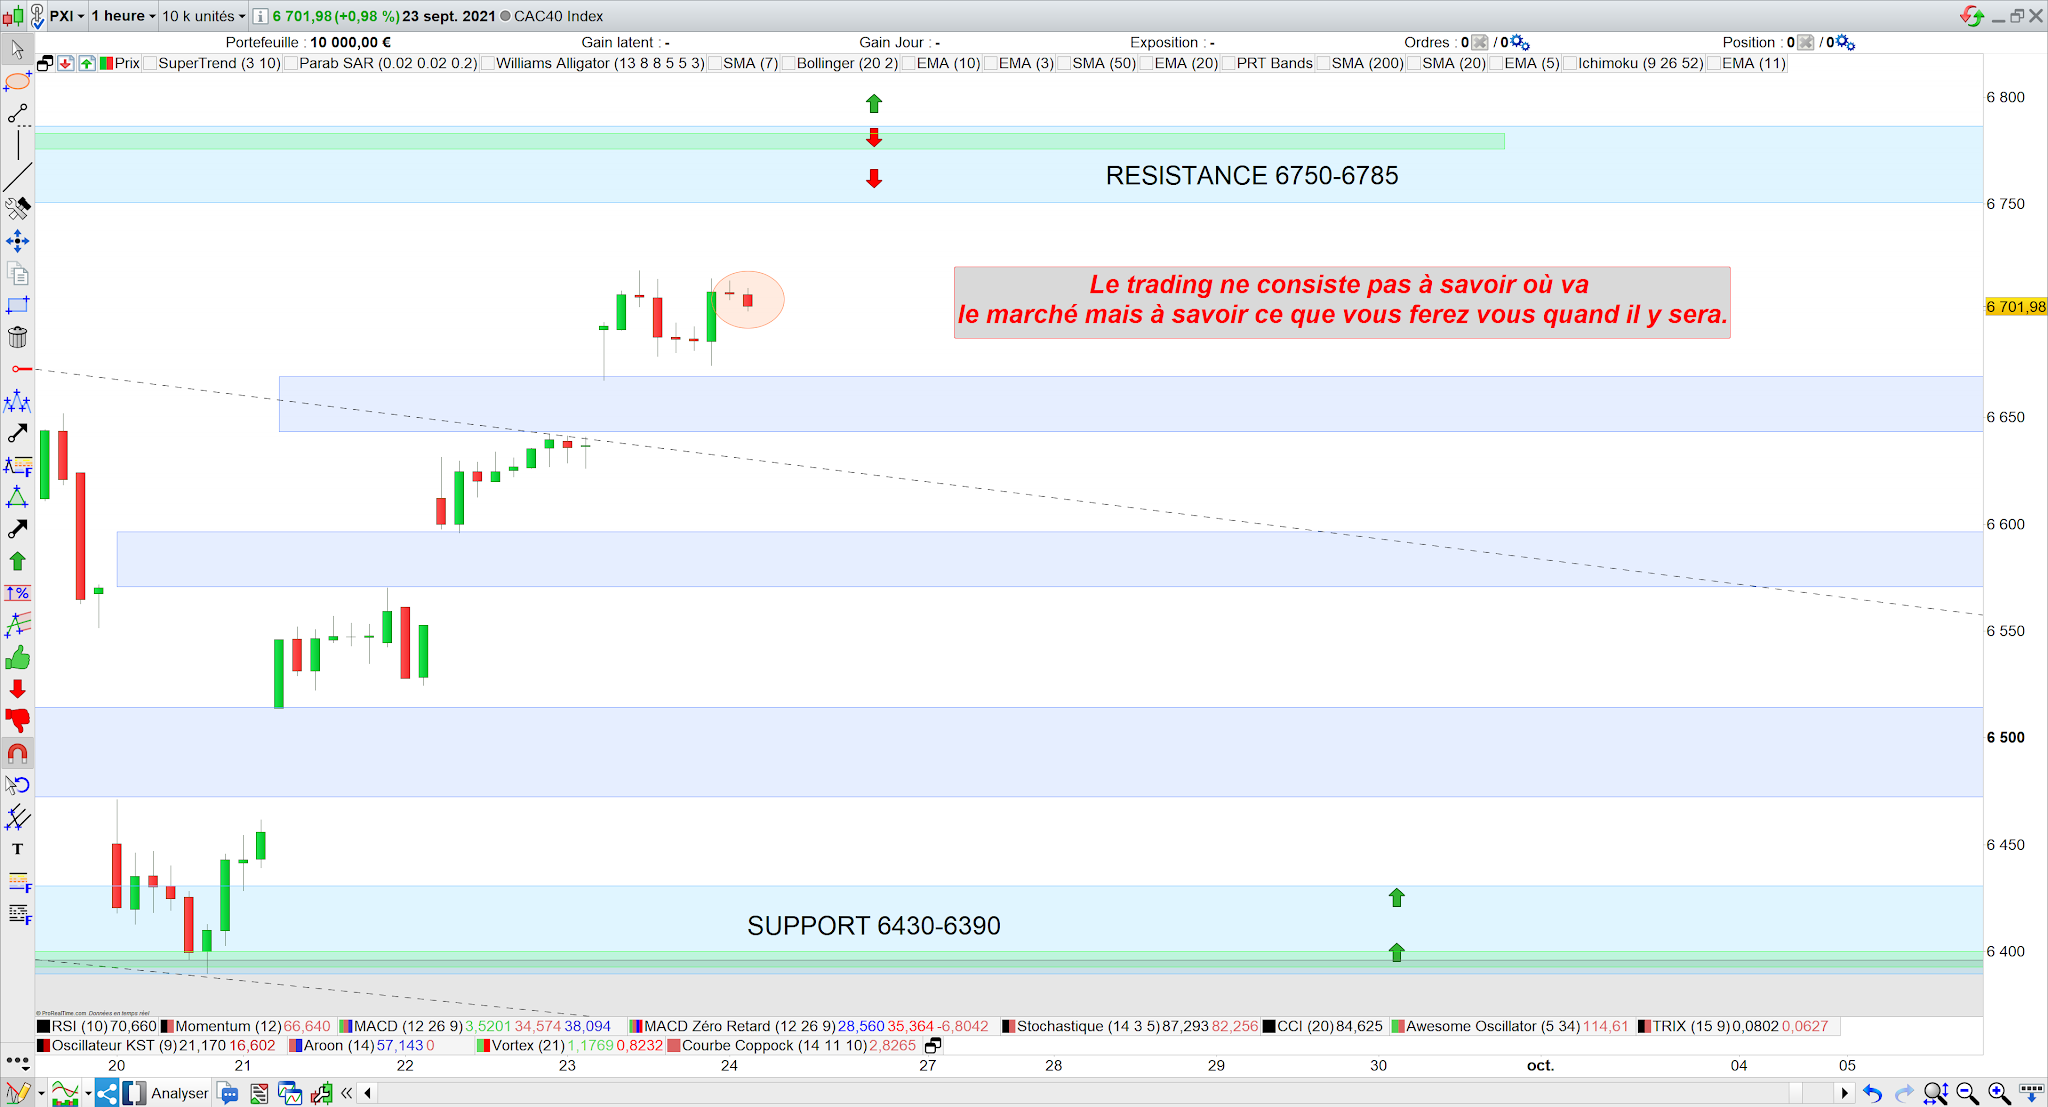 Trading cac40 24/09/21